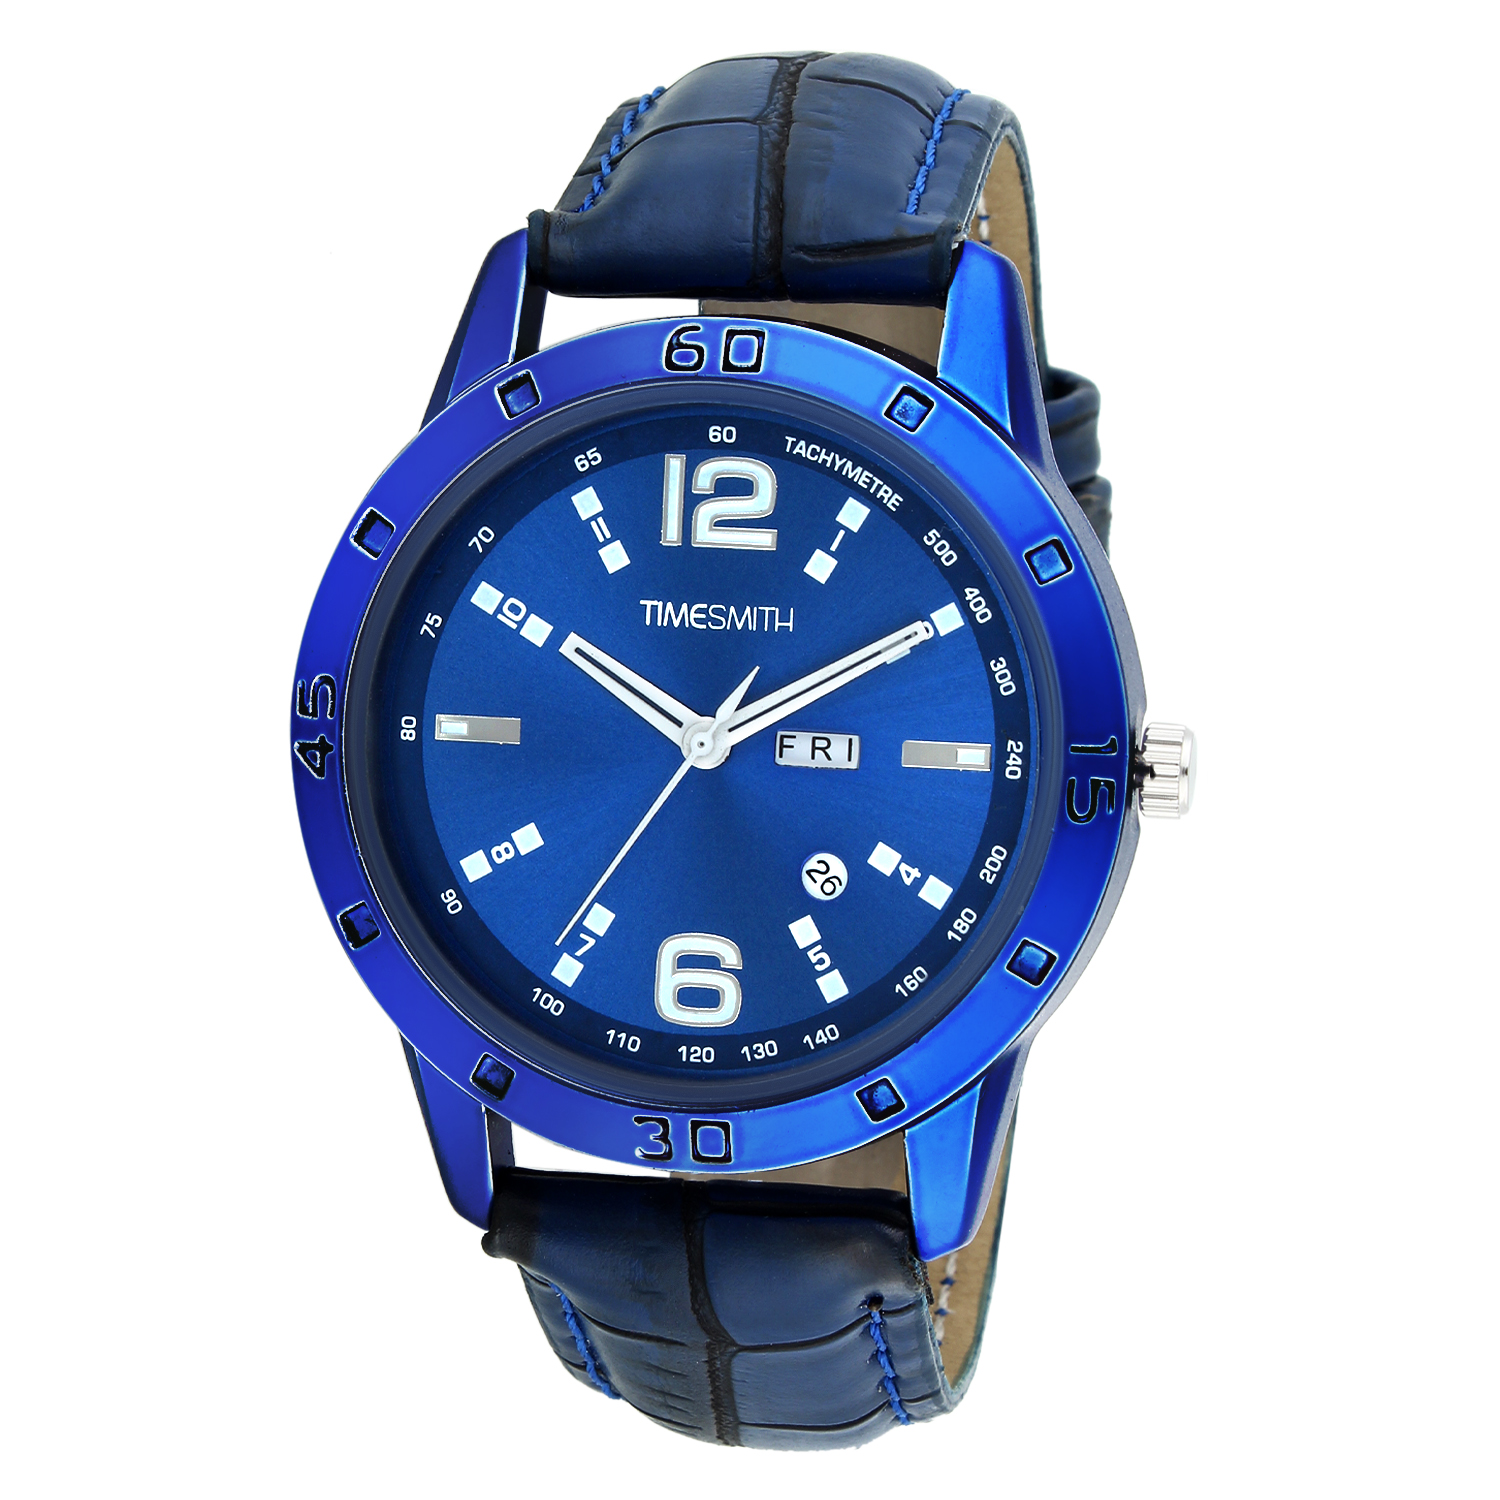 Timesmith   Timesmith Blue Dial Blue Leather Analog Watch for Men TSC-034hy